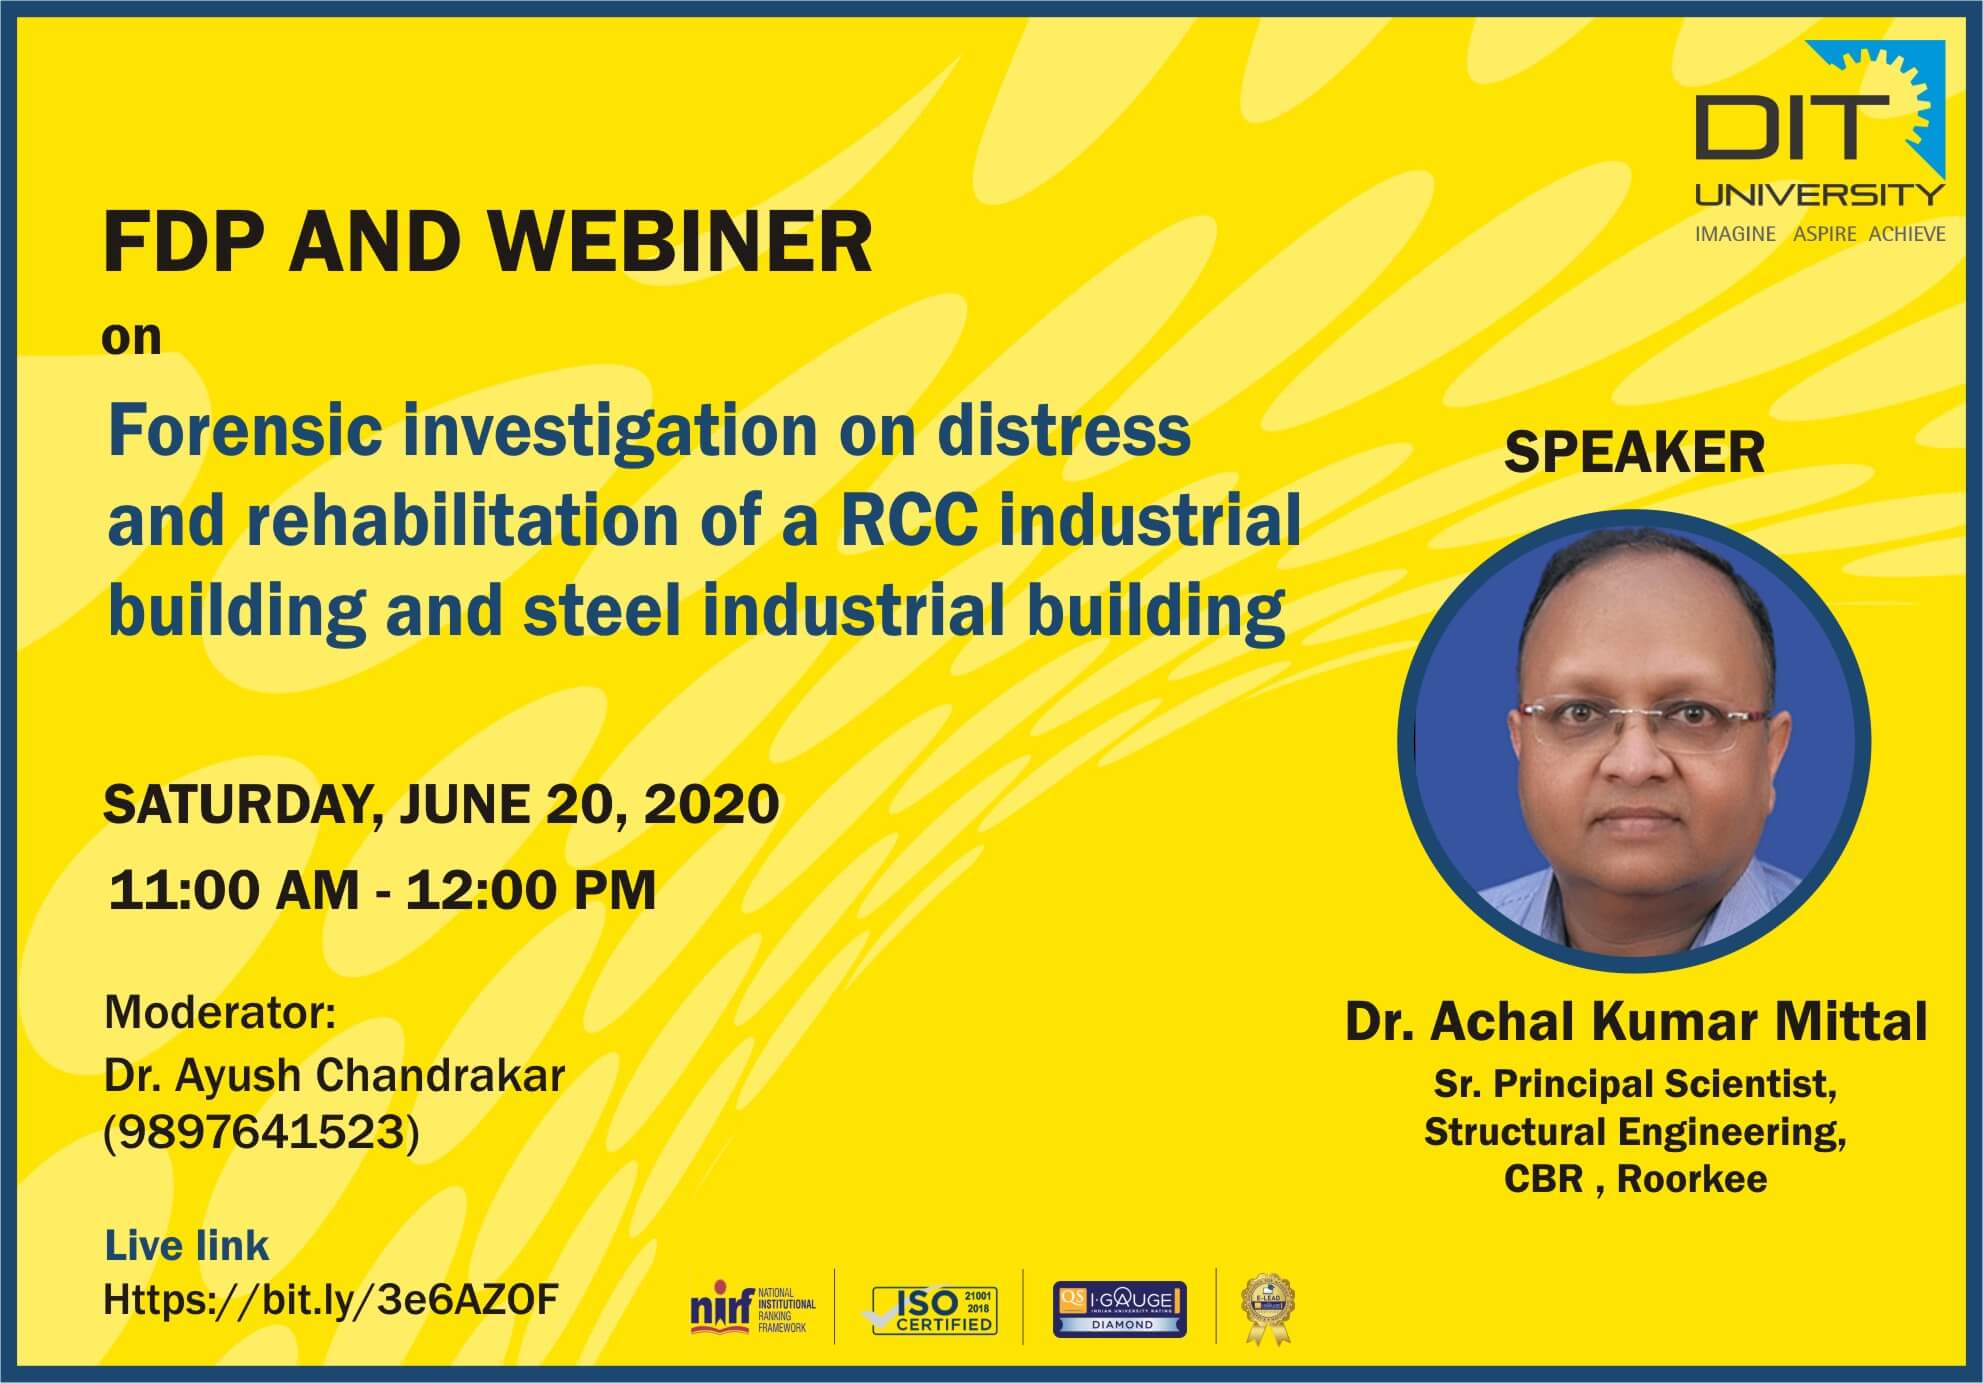 Webinar on 'Forensic Investigation on Distress and Rehabilitation of a RCC Industrial Building and Steel Industrial Building'